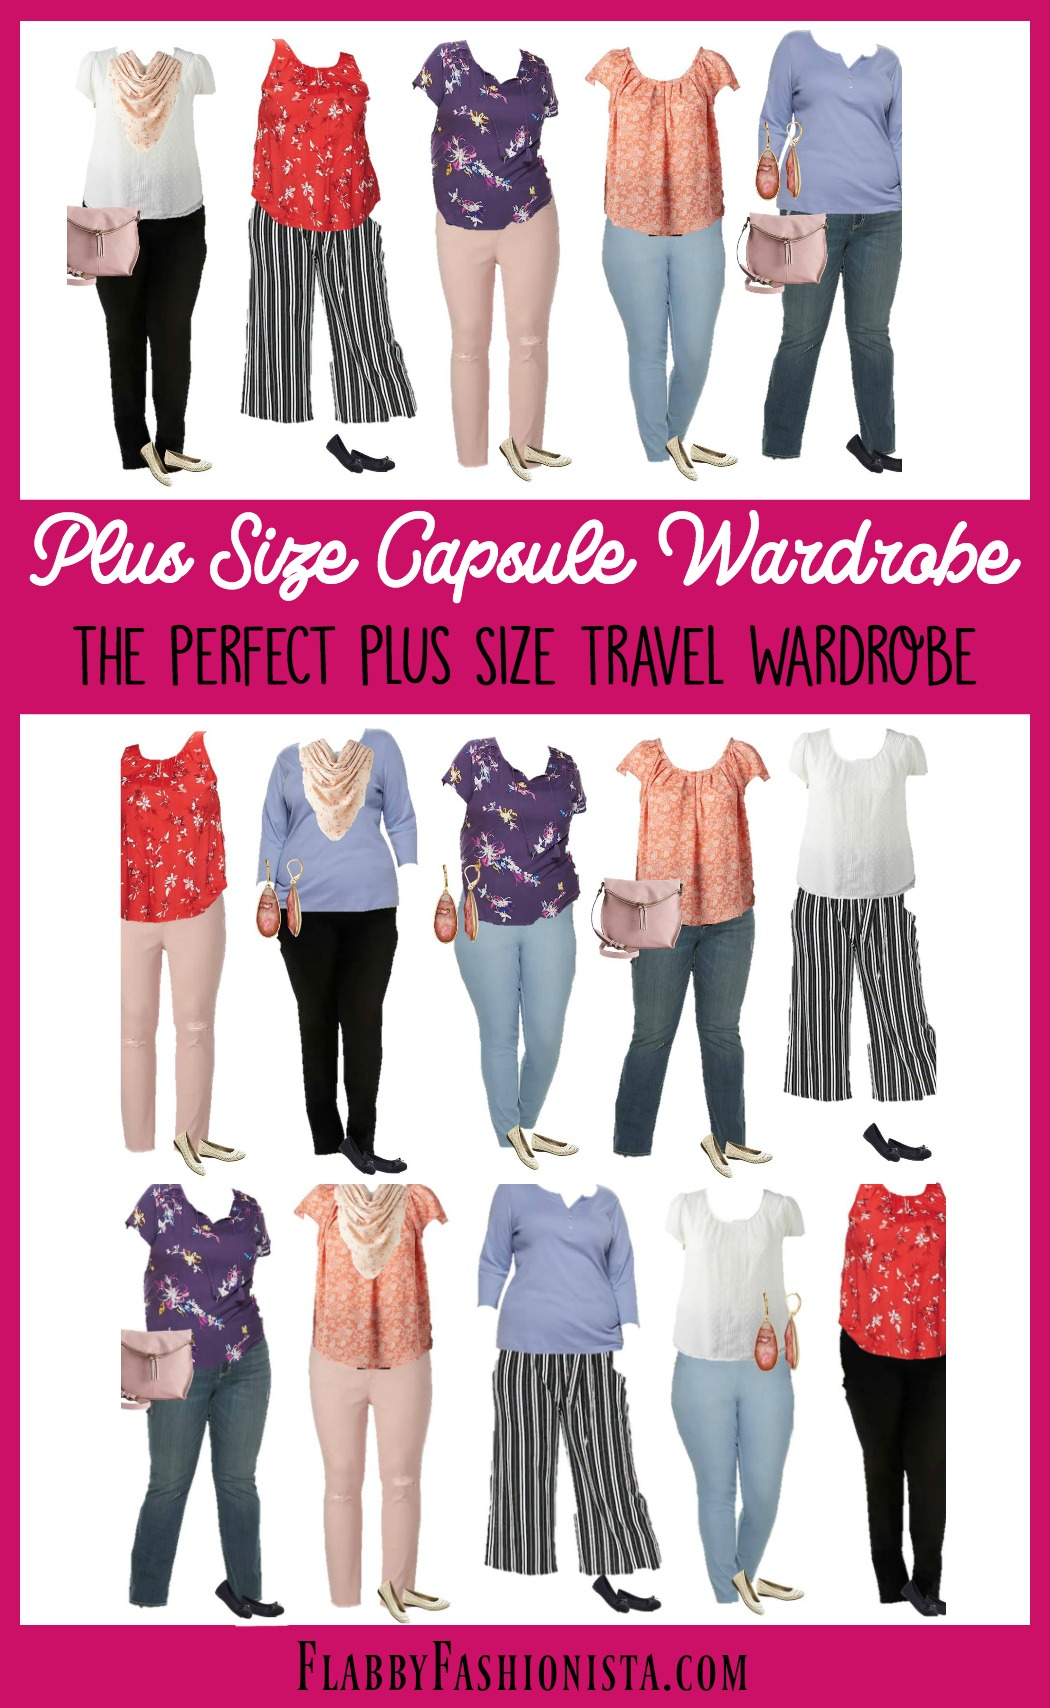 6360ed49da9 Spring Plus Size Capsule Wardrobe  The Perfect Plus Size Travel Wardrobe